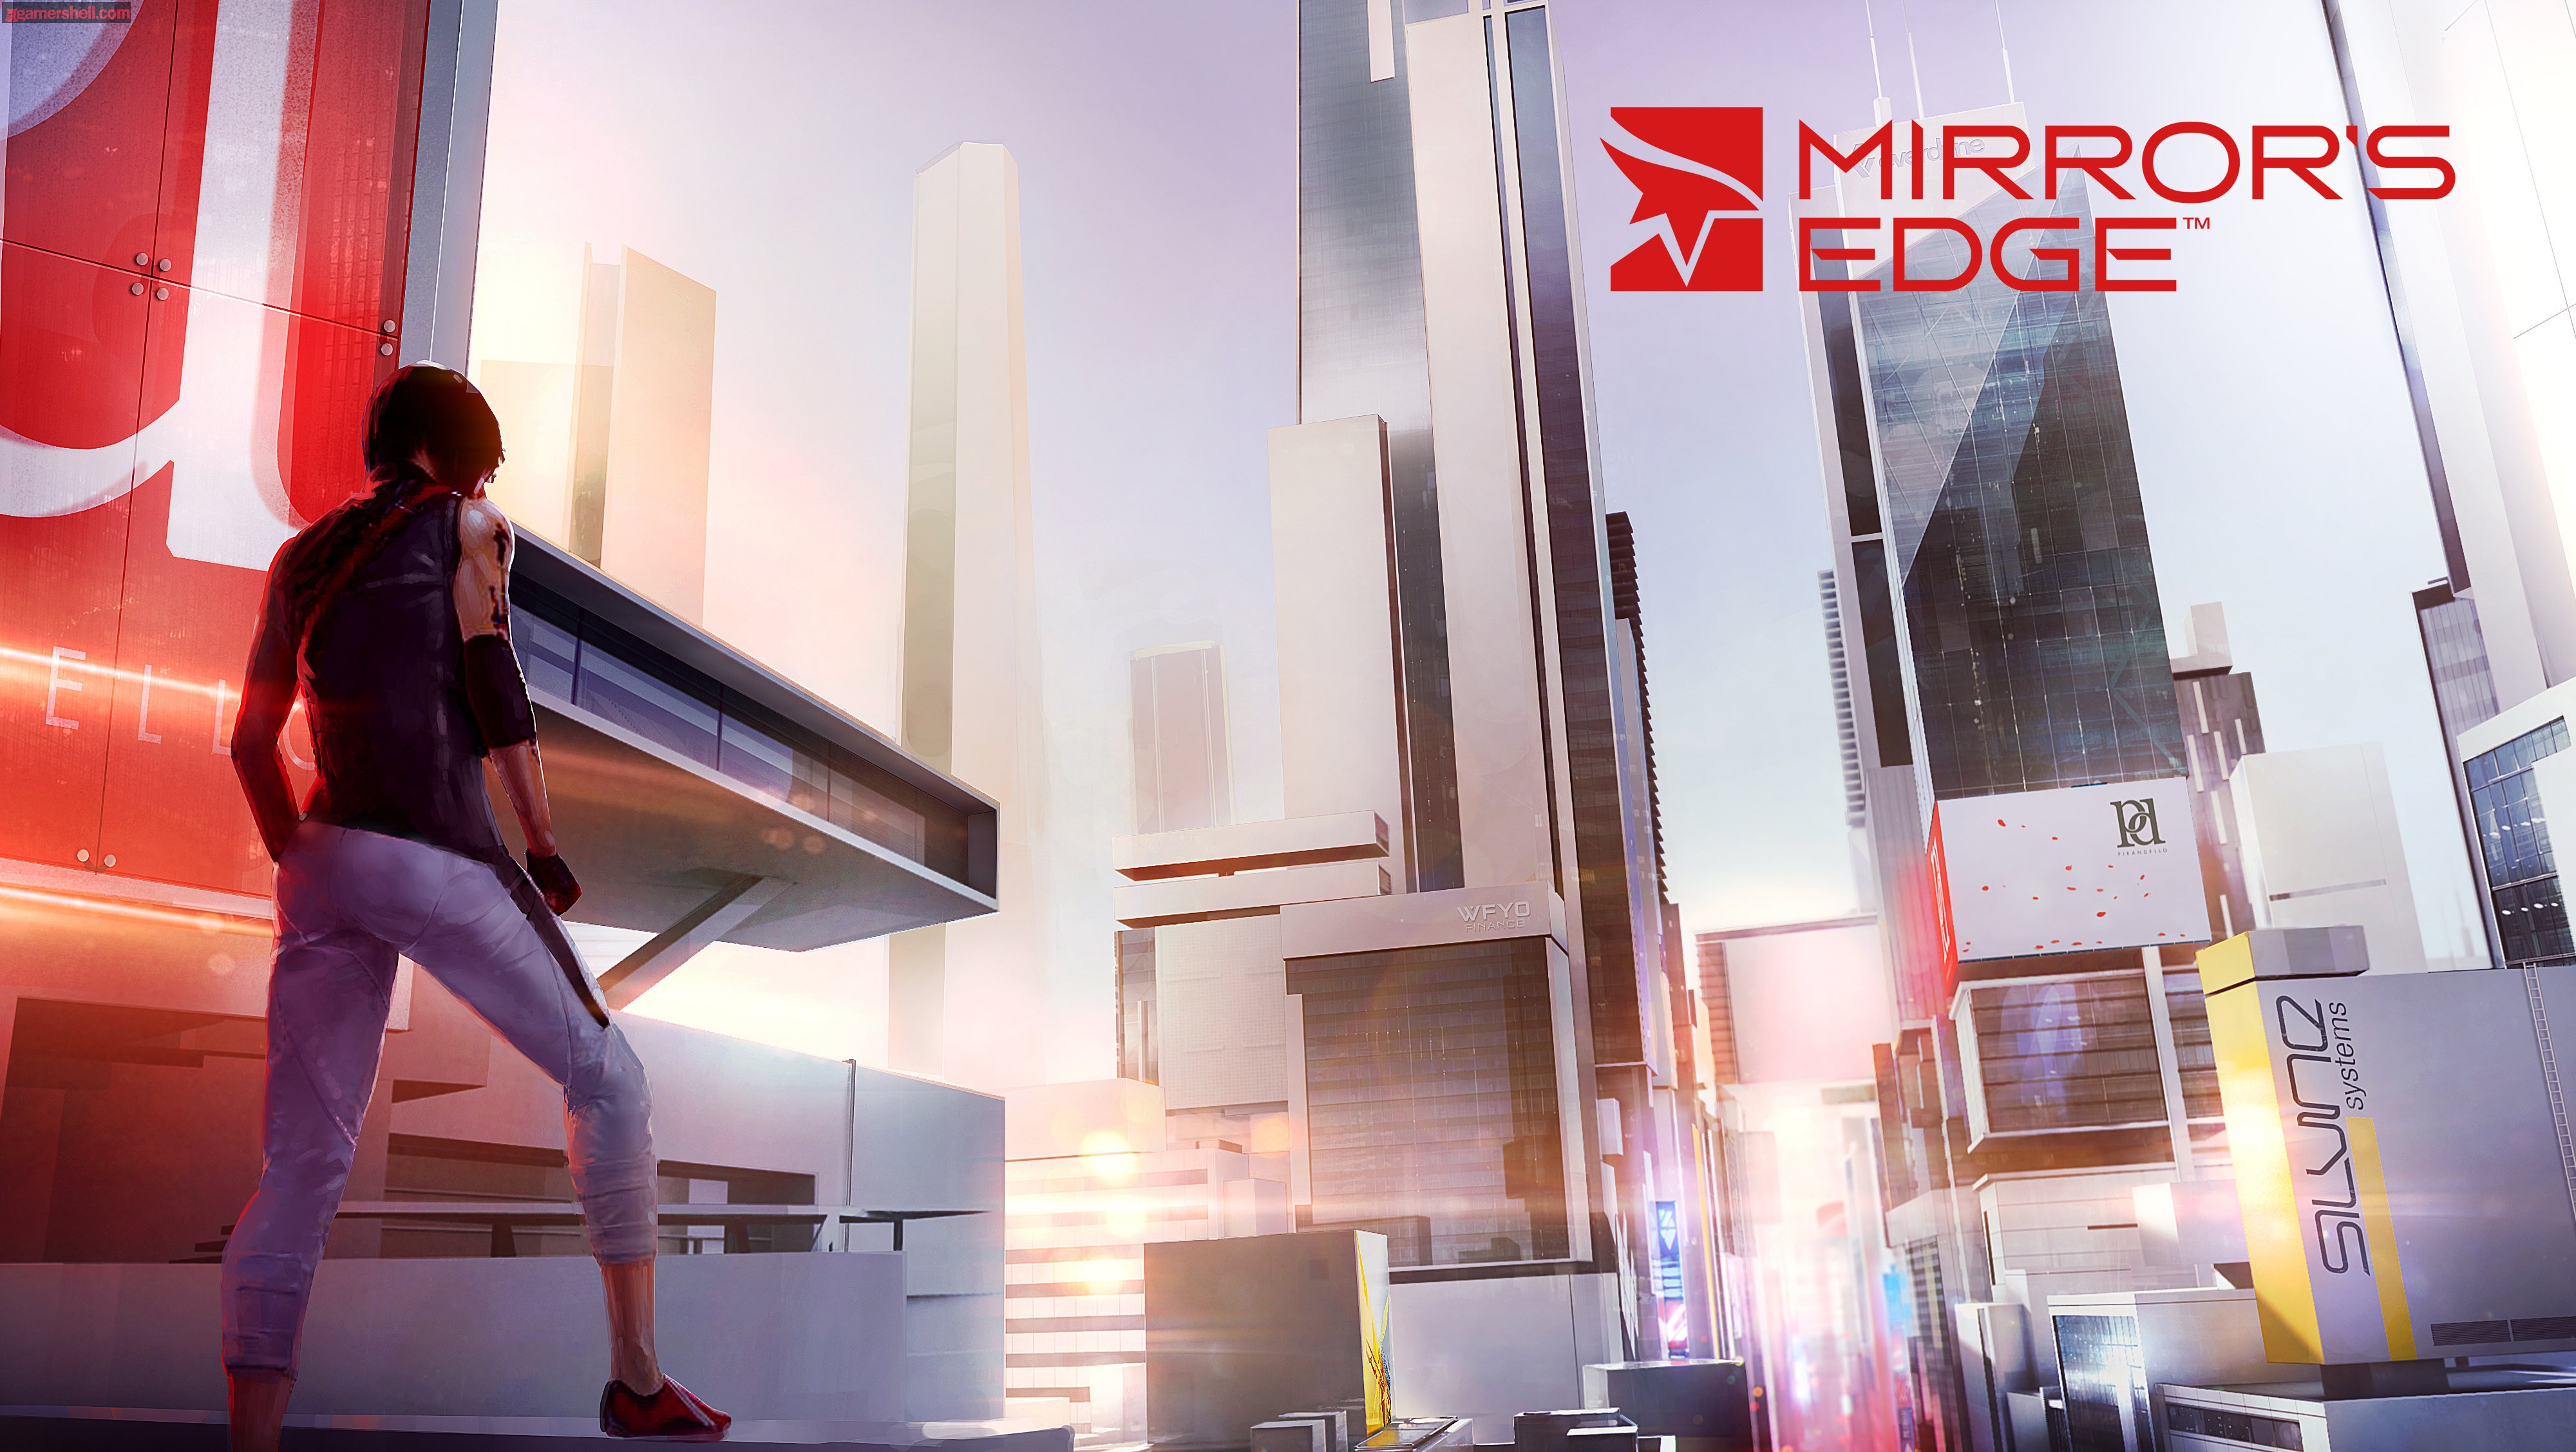 Mirrors Edge Catalyst Doesnt Quite Stick The Landing 860319 full